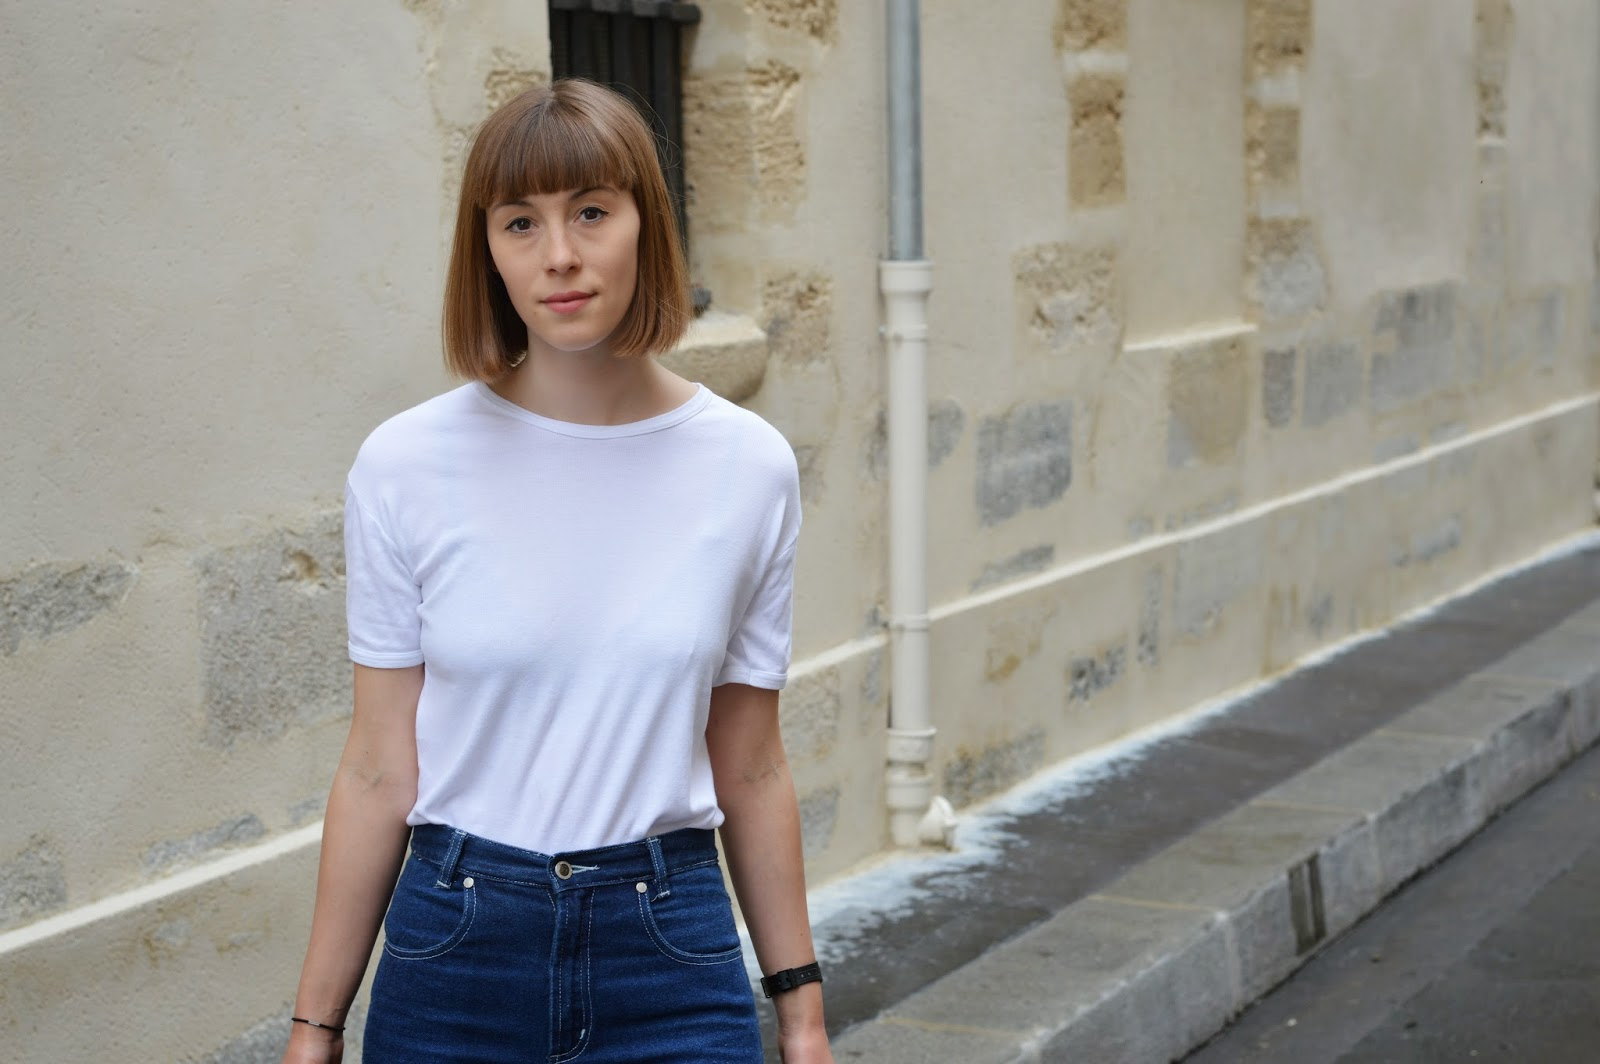 Basic white t-shirt and jeans